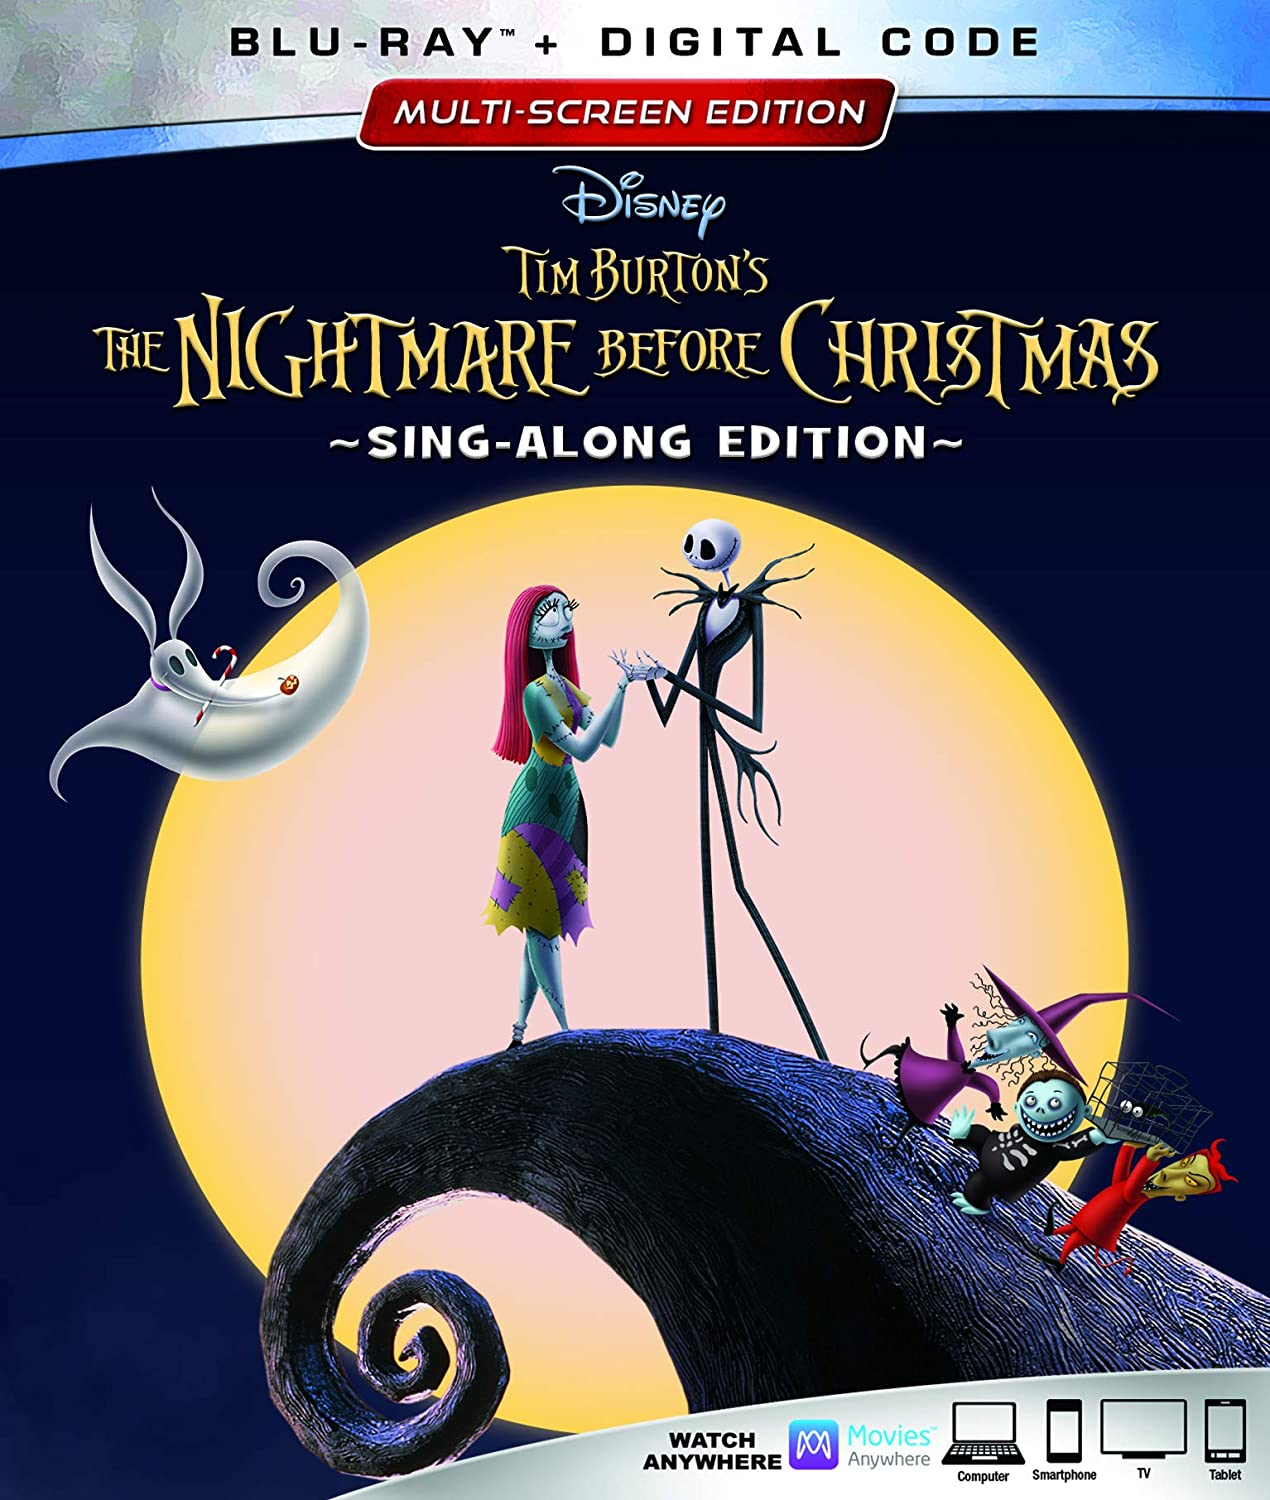 The Nightmare Before Christmas 2020 Blu-Ray Release Amazon.com: NIGHTMARE BEFORE CHRISTMAS, THE (TIM BURTON'S) [Blu